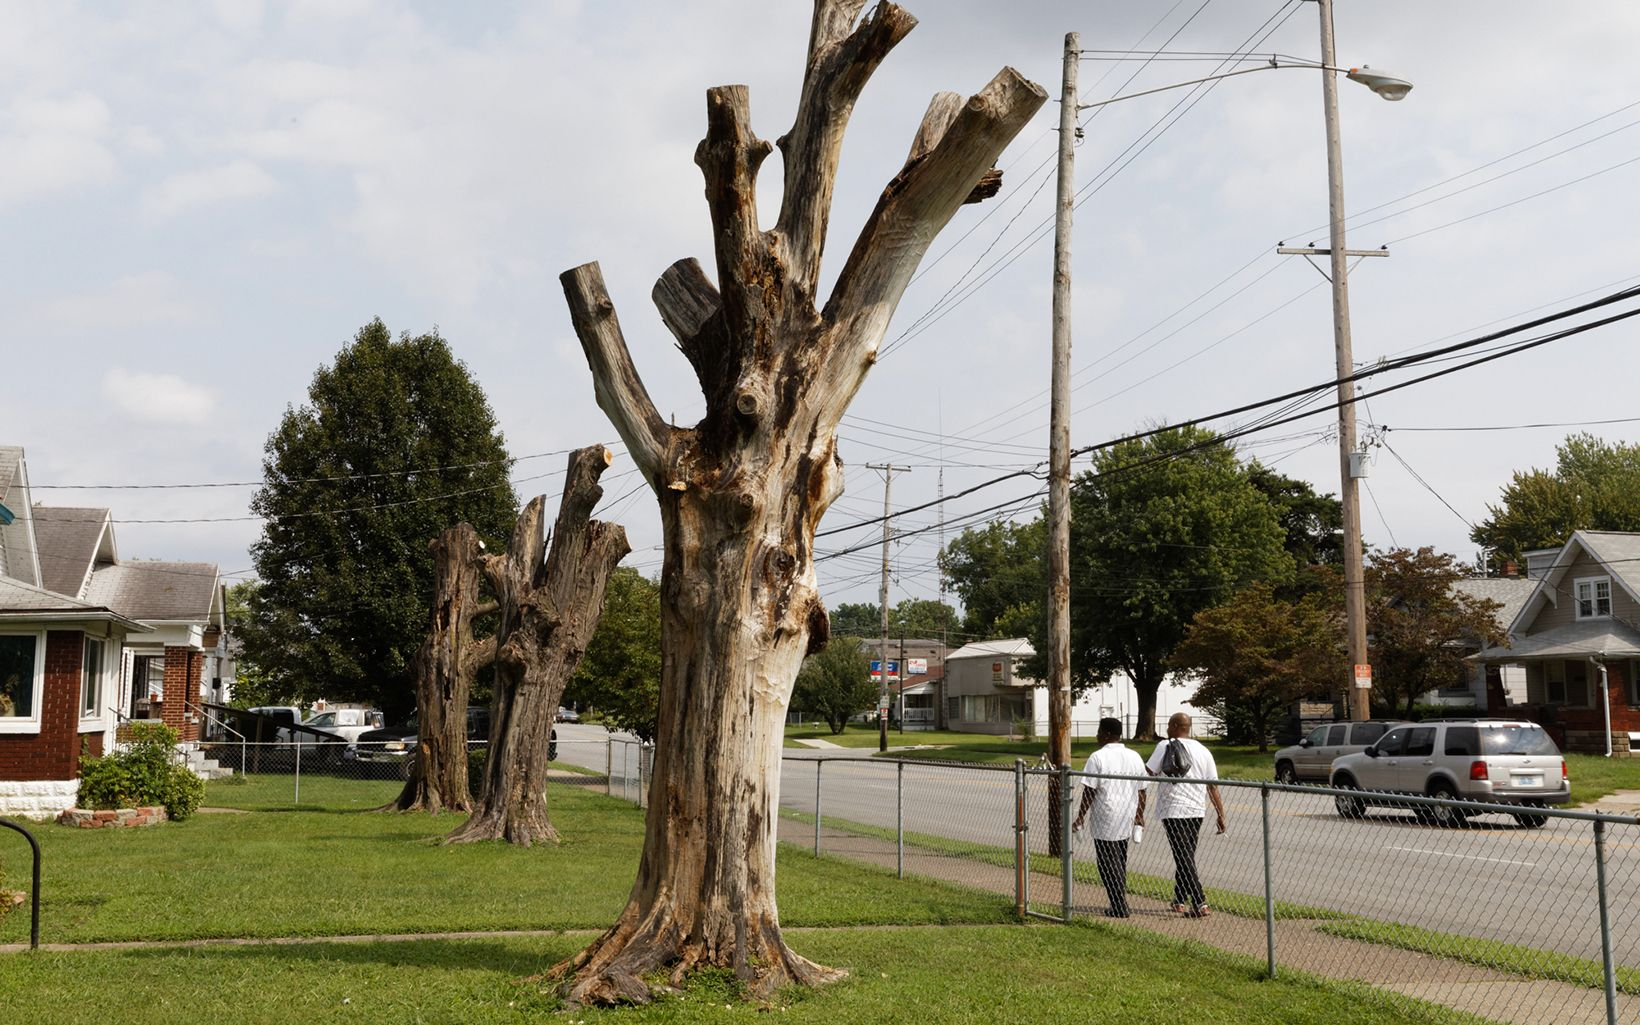 One of three dead trees on Beach Avenue in South Louisville. Storms, development and insect pests like emerald ash borer result in the loss of 150 trees per day in Louisville.